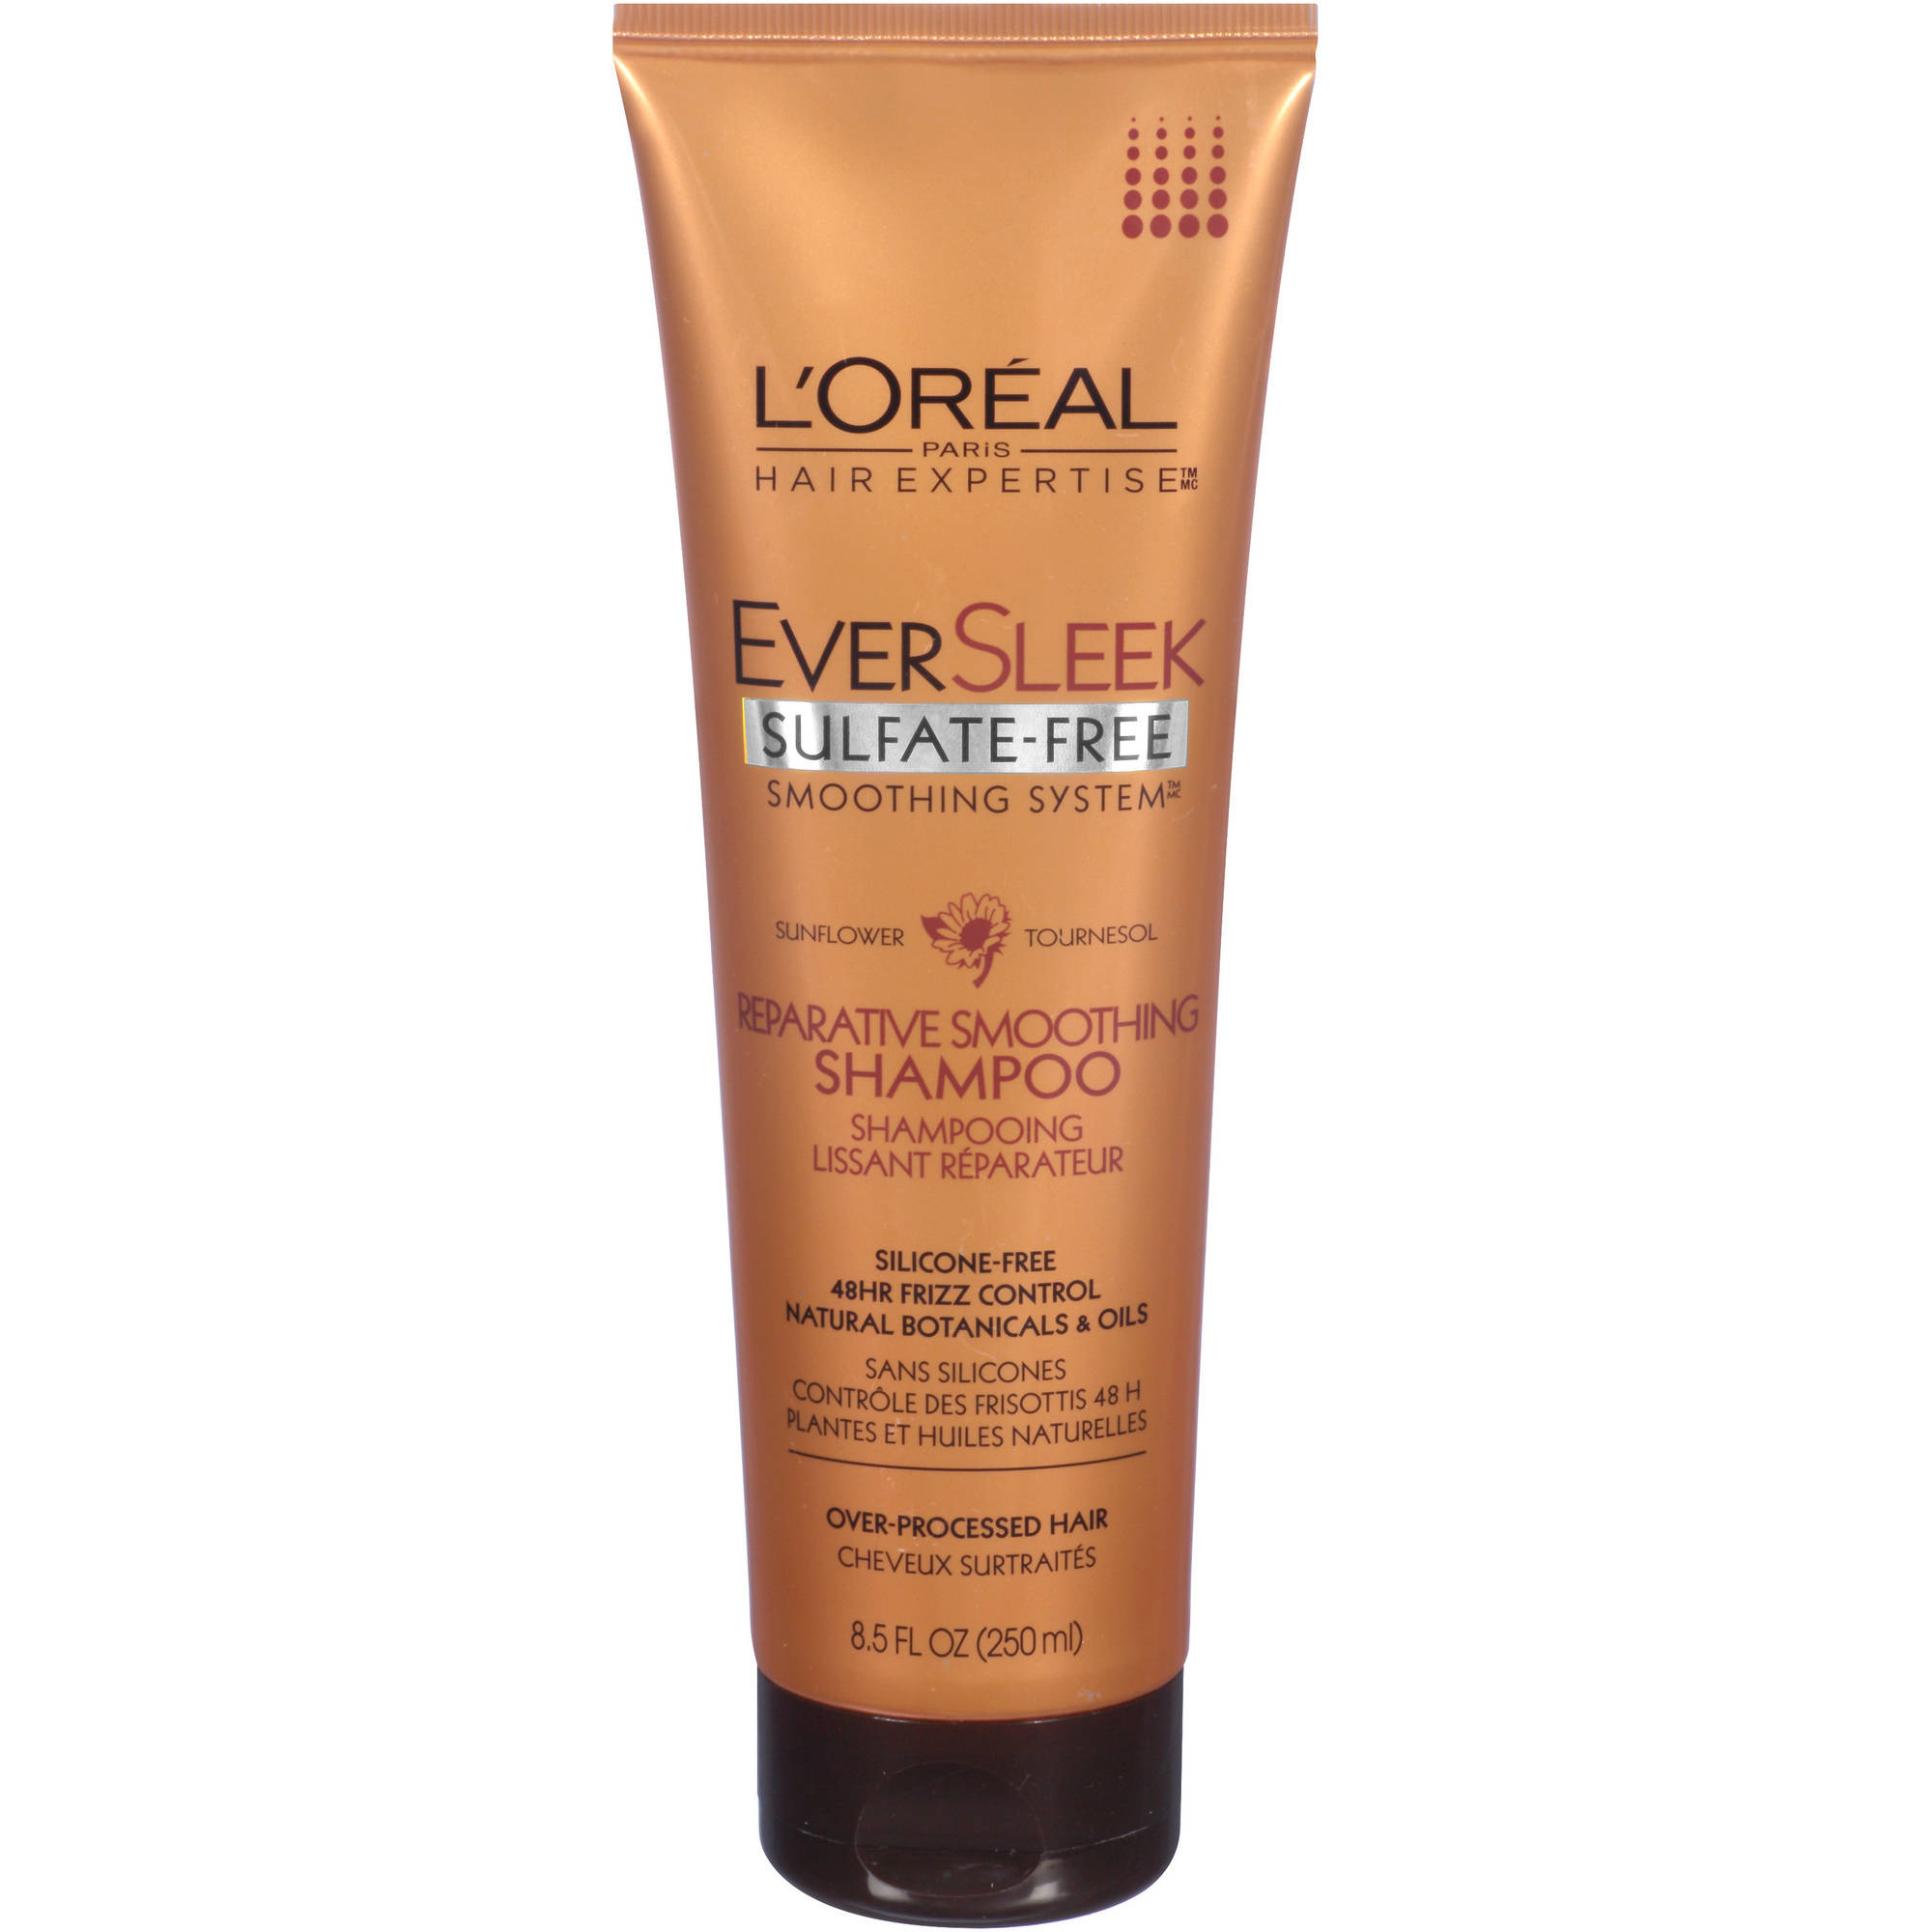 L'Oréal Paris EverSleek Reparative Smoothing Shampoo, 8.5 Oz